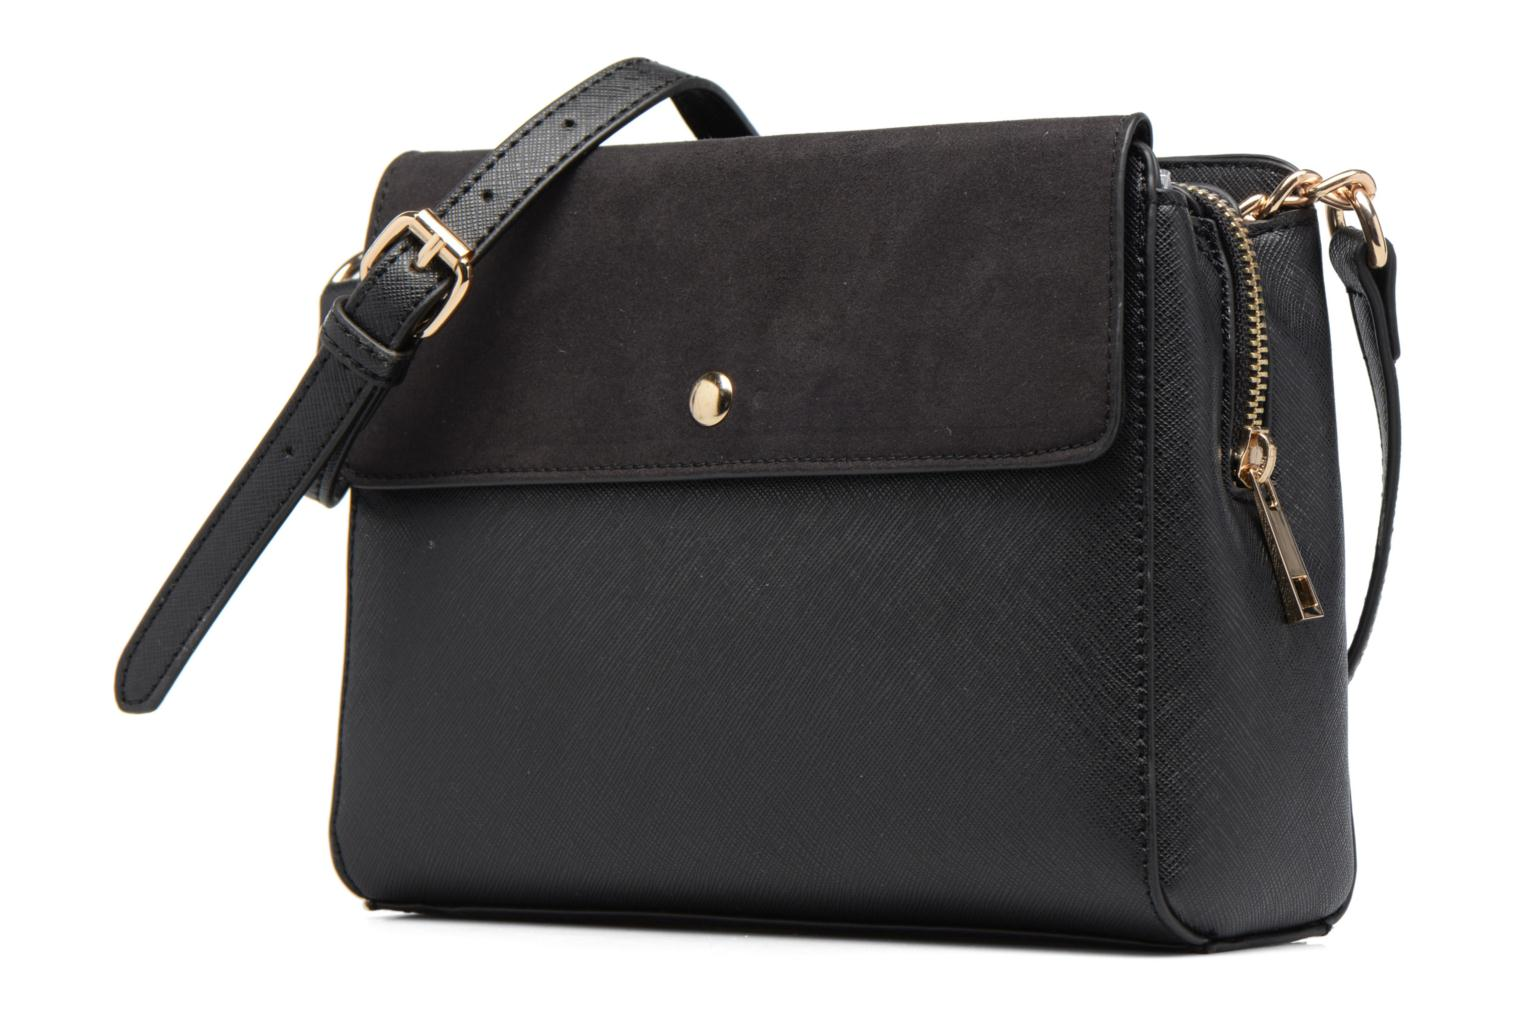 Triple Compartment Body Black